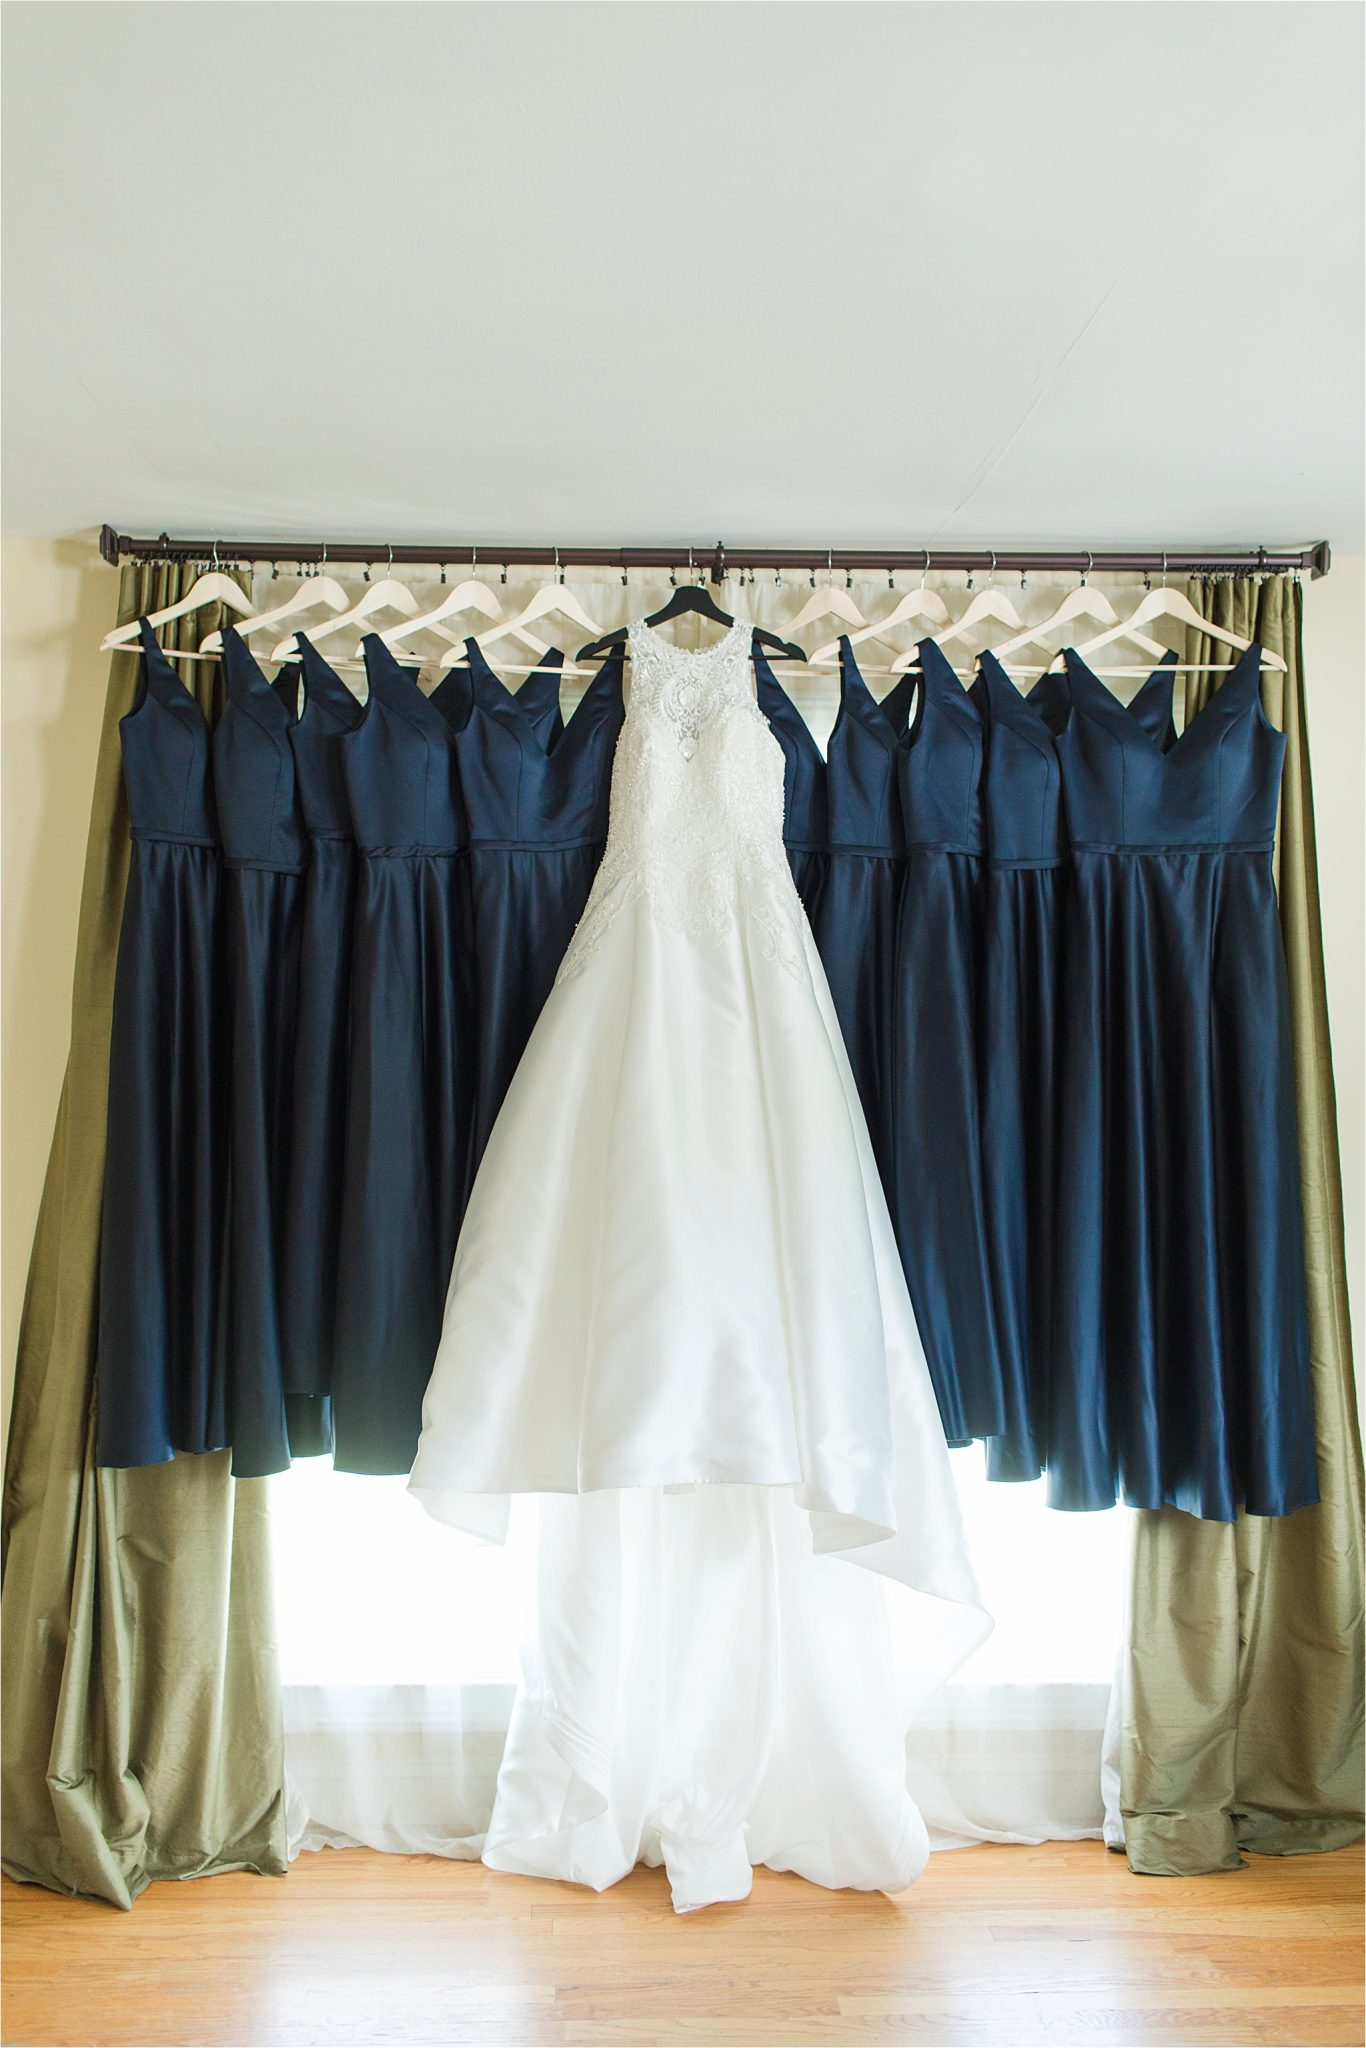 Sonnet House, Birmingham Alabama Wedding Photographer, Wedding dress, Blue themed wedding